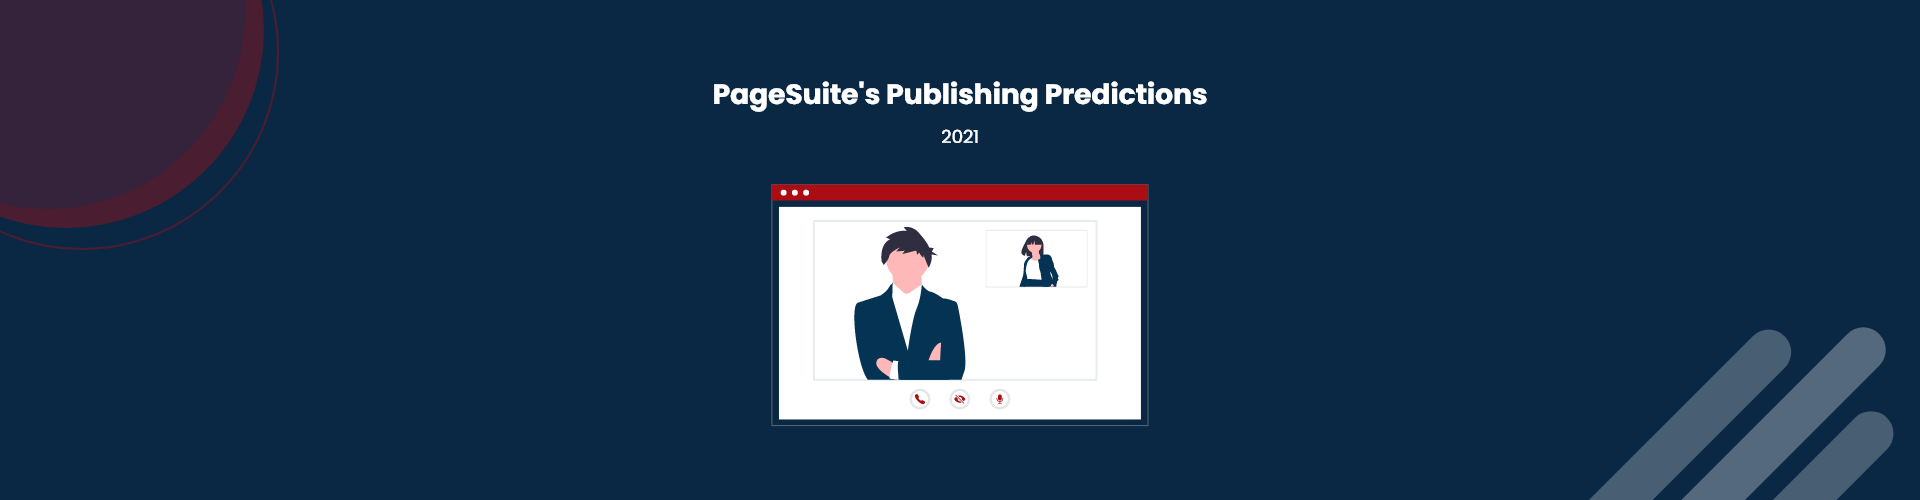 PageSuite's Publishing Predictions